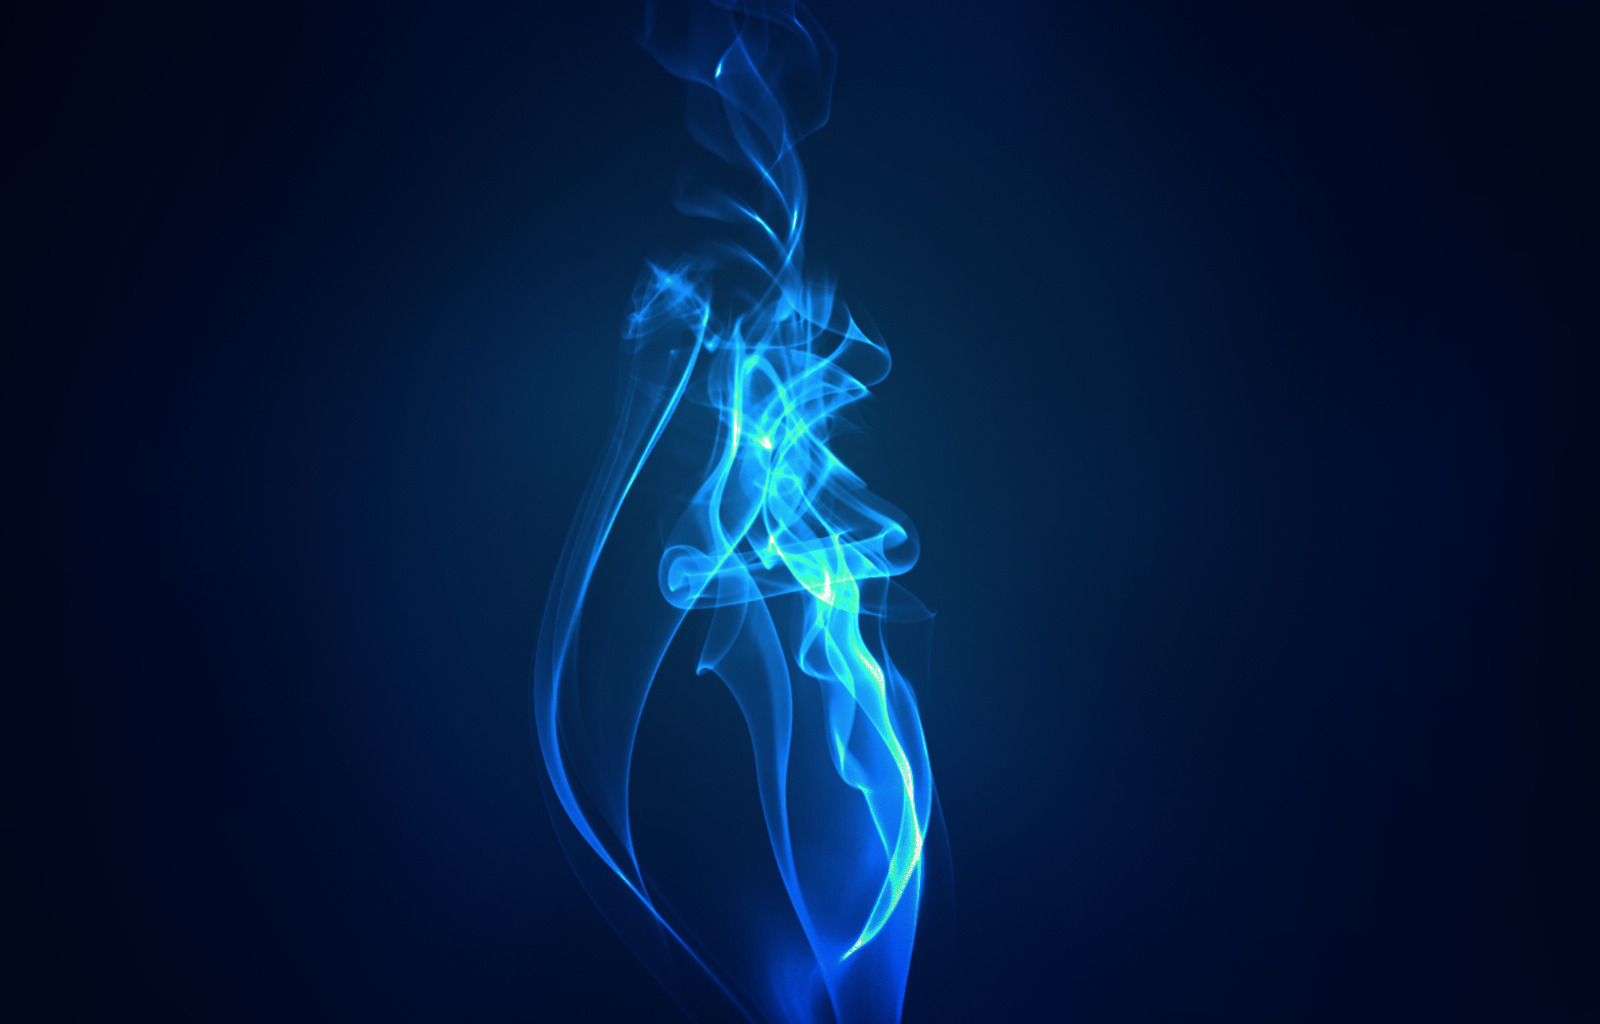 Blue Flame Wallpaper